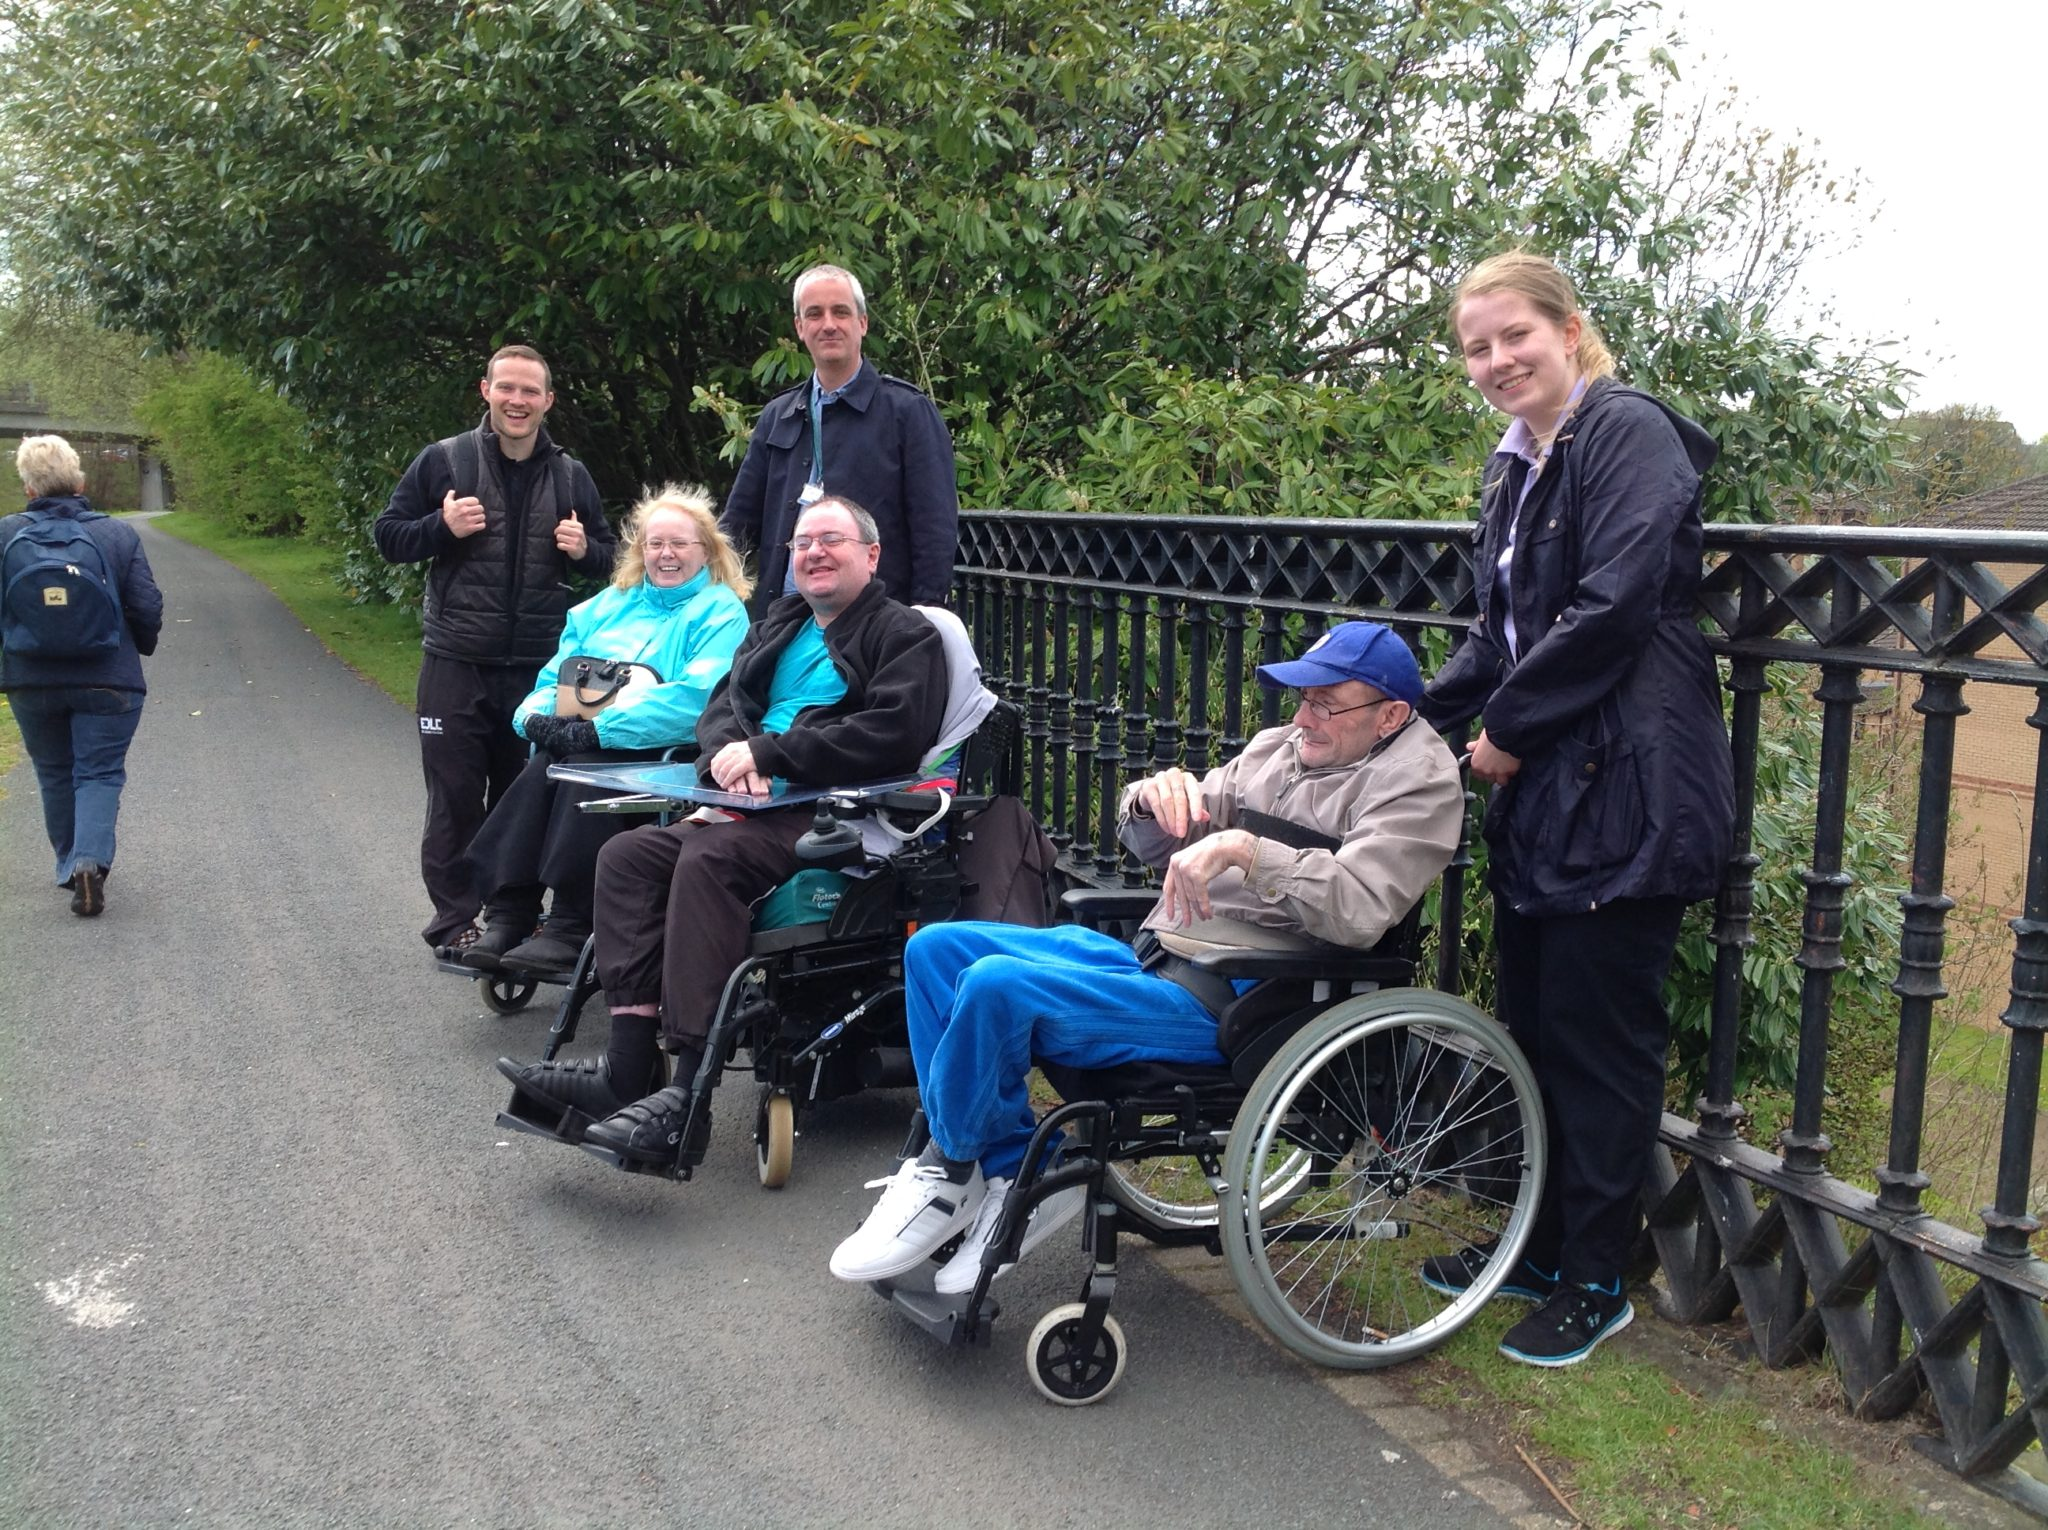 Three wheelchair users and three walkers.